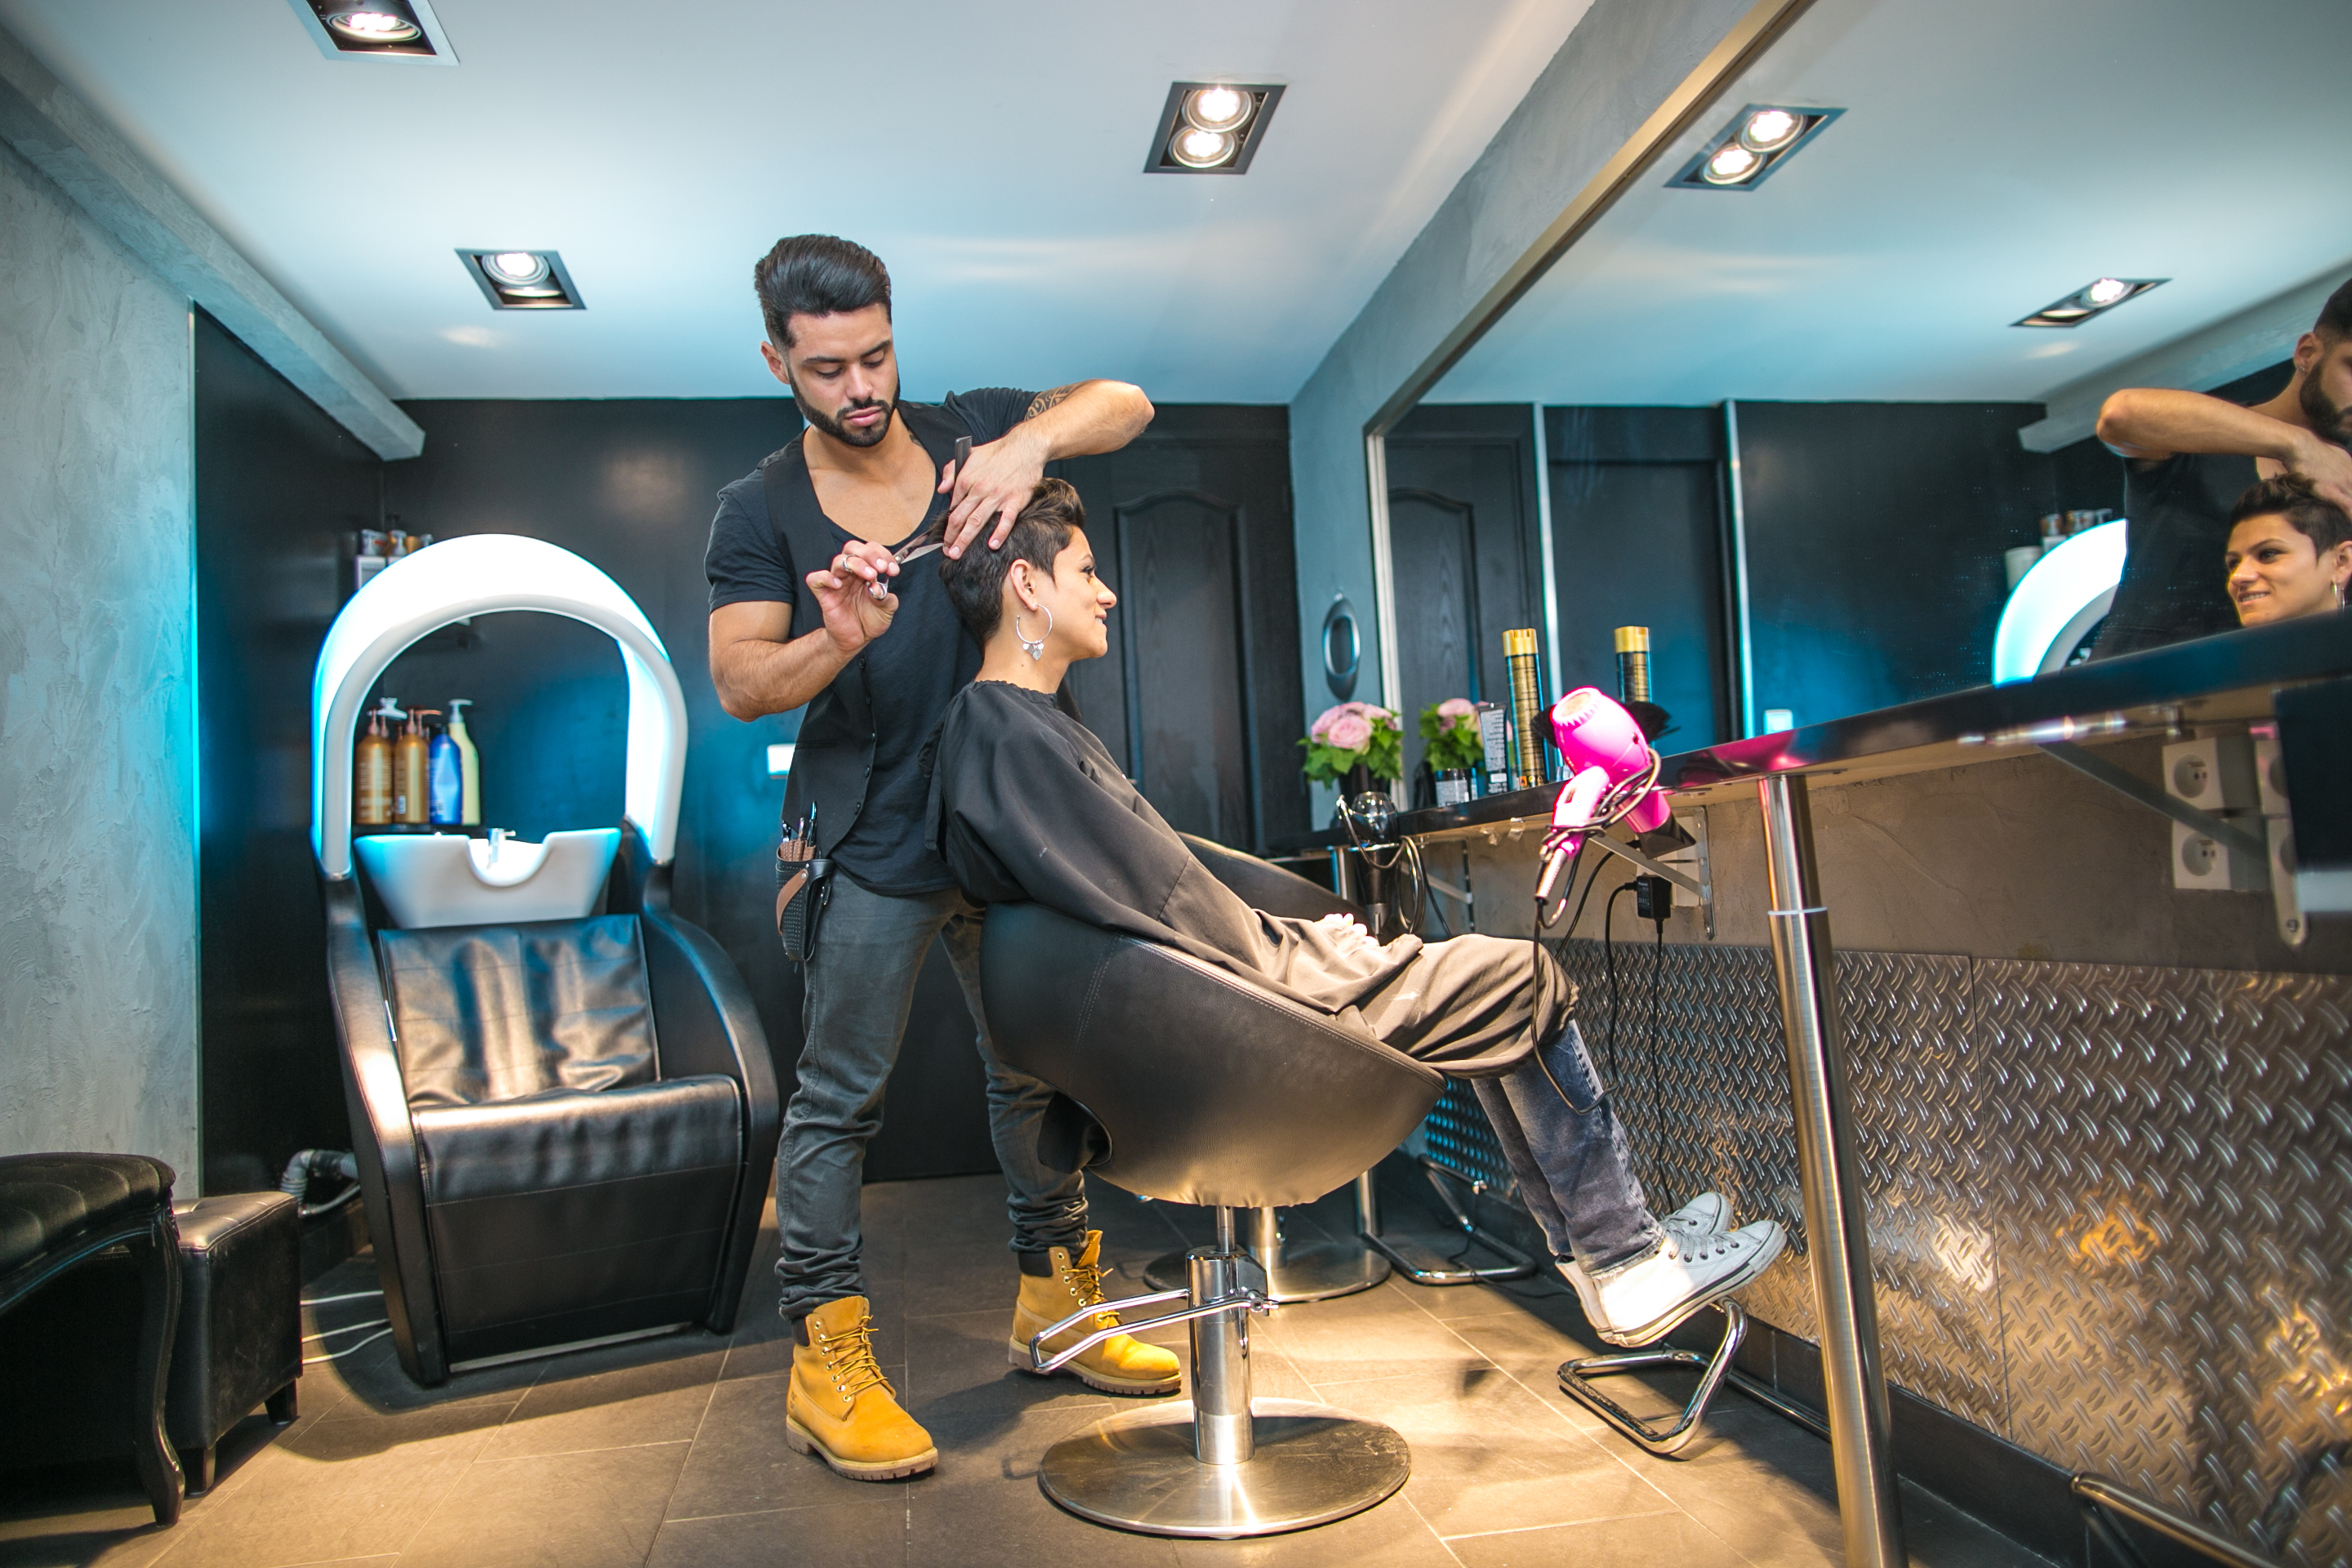 J 39 ai test le salon de coiffure de jordy brechkoff une for Photo de salon de coiffure